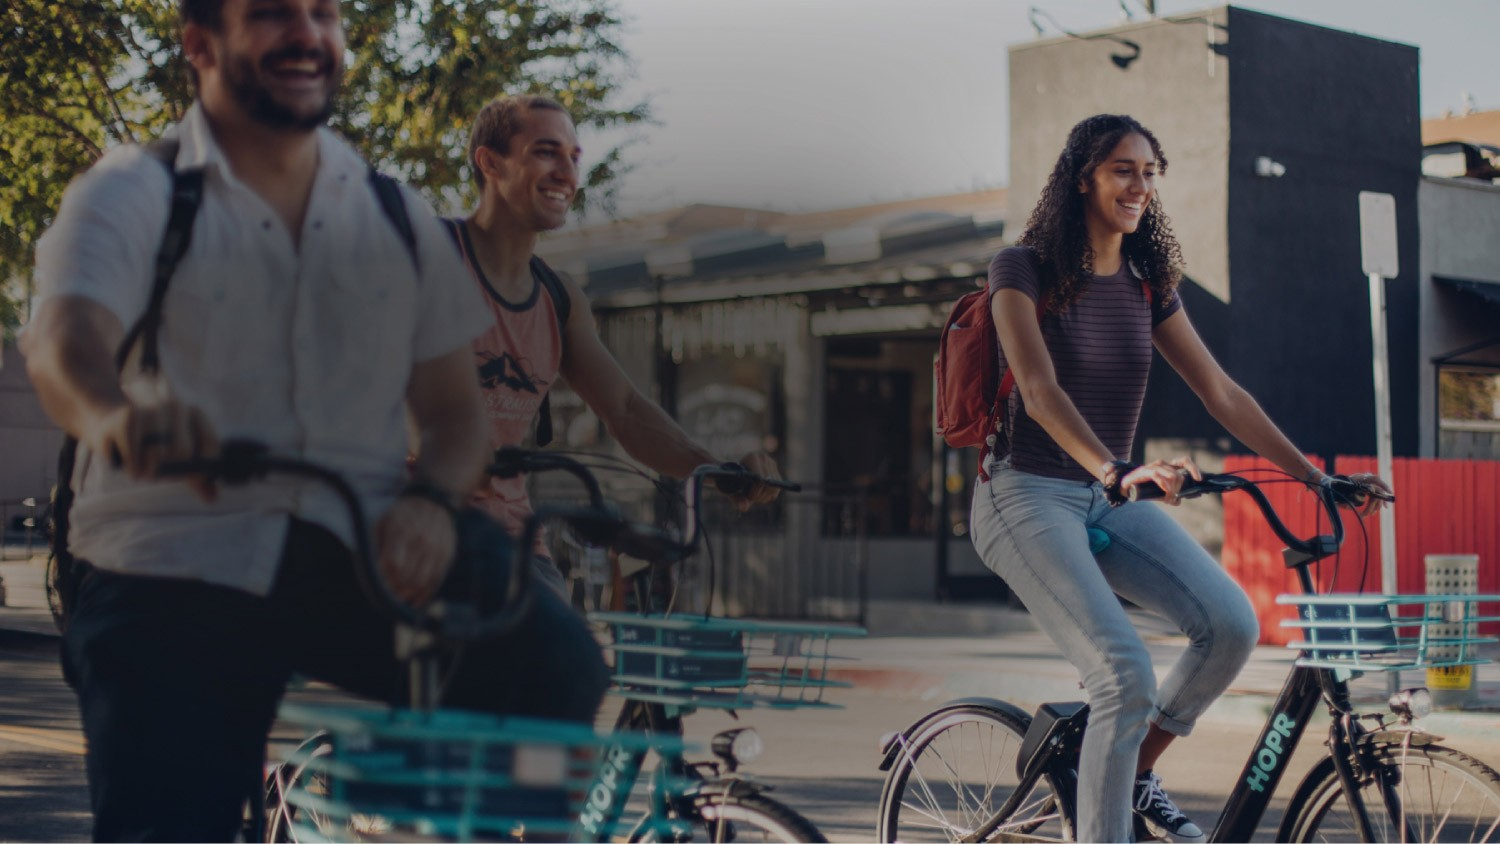 The next generation of leaders needs next generation mobility. HOPR is a sustainable, forward-thinking campus transit solution.